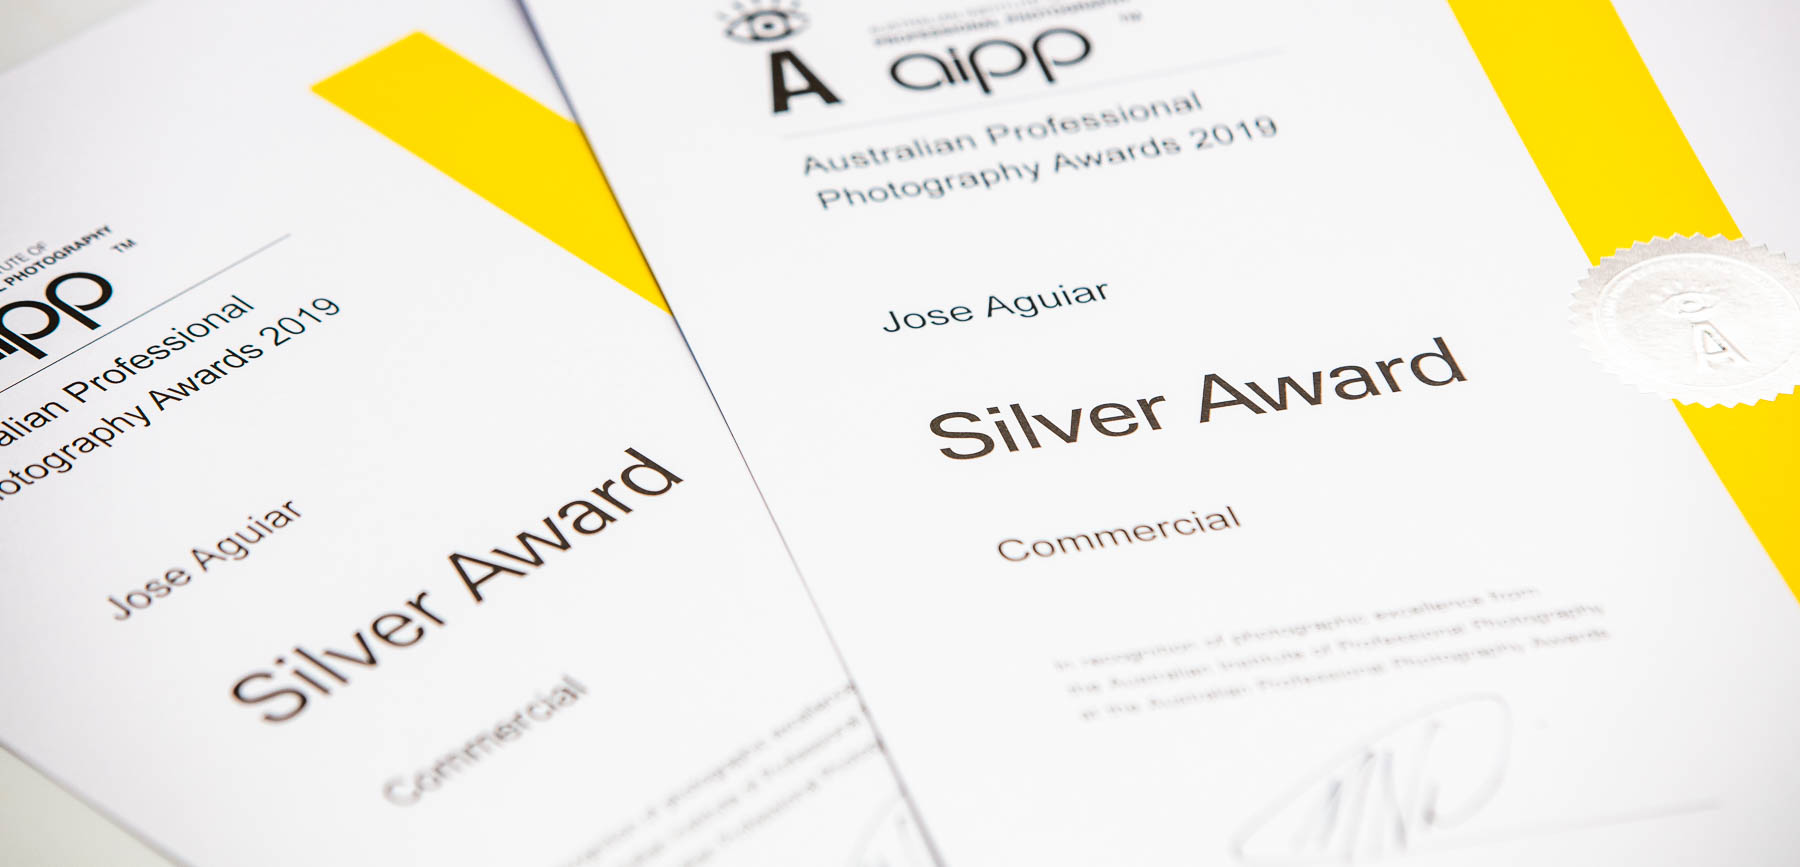 SIlver Awards Certificate APPA 2019